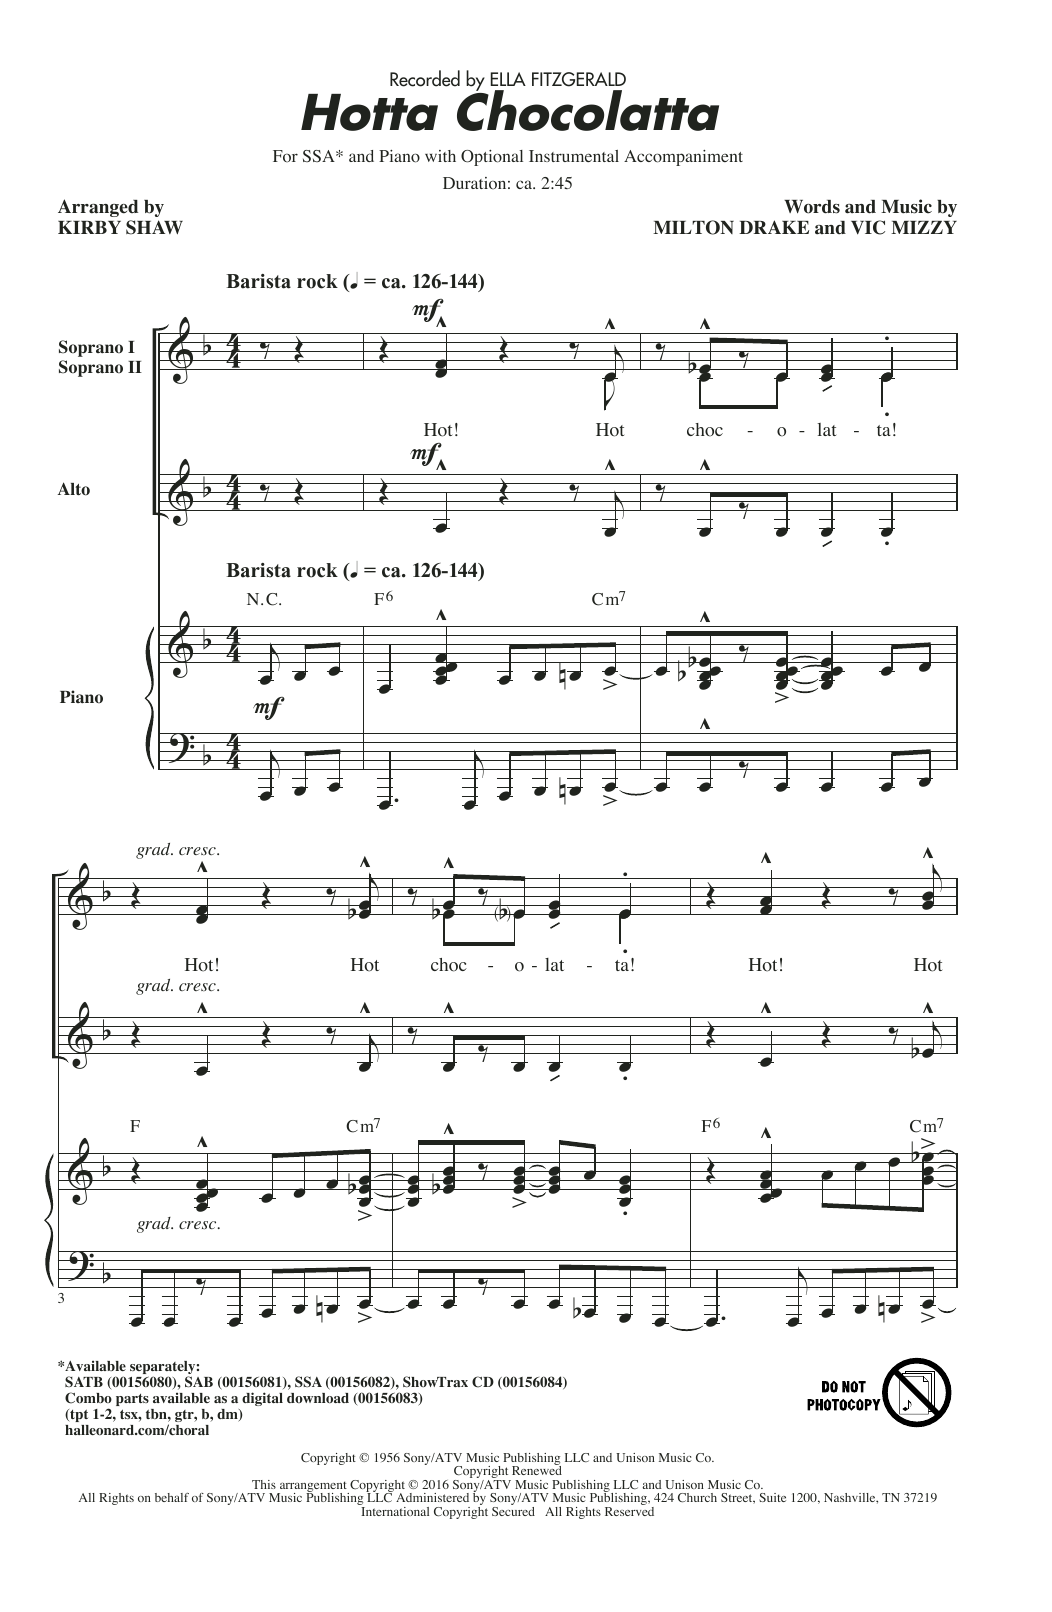 Hotta Chocolatta Sheet Music